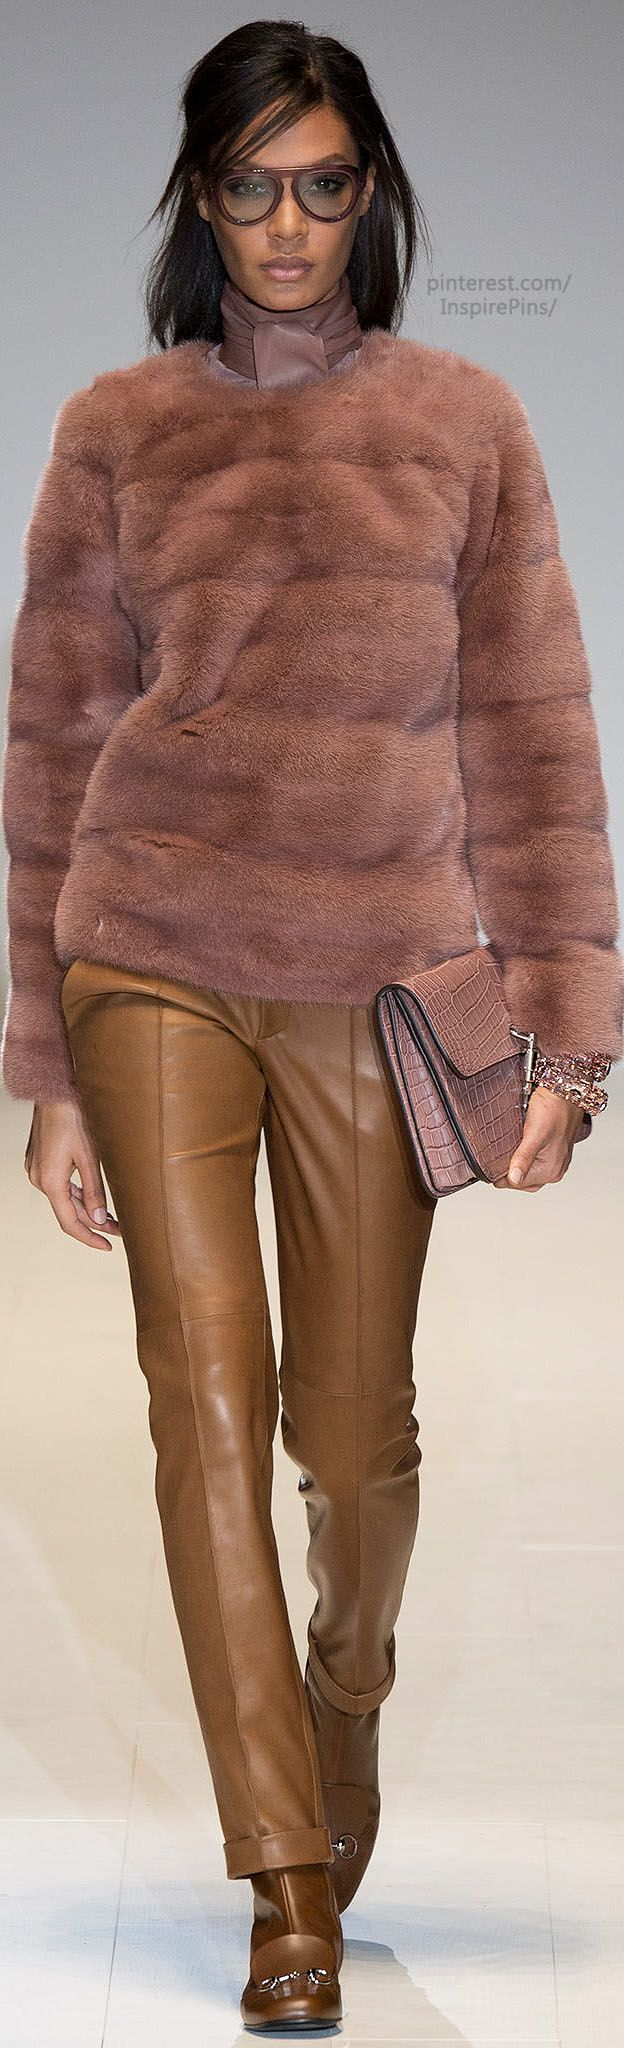 "Fall 2014 Ready-to-Wear Gucci intimate Julie Christie, the famous actress in the ""swinging London"" period of the 1960s"